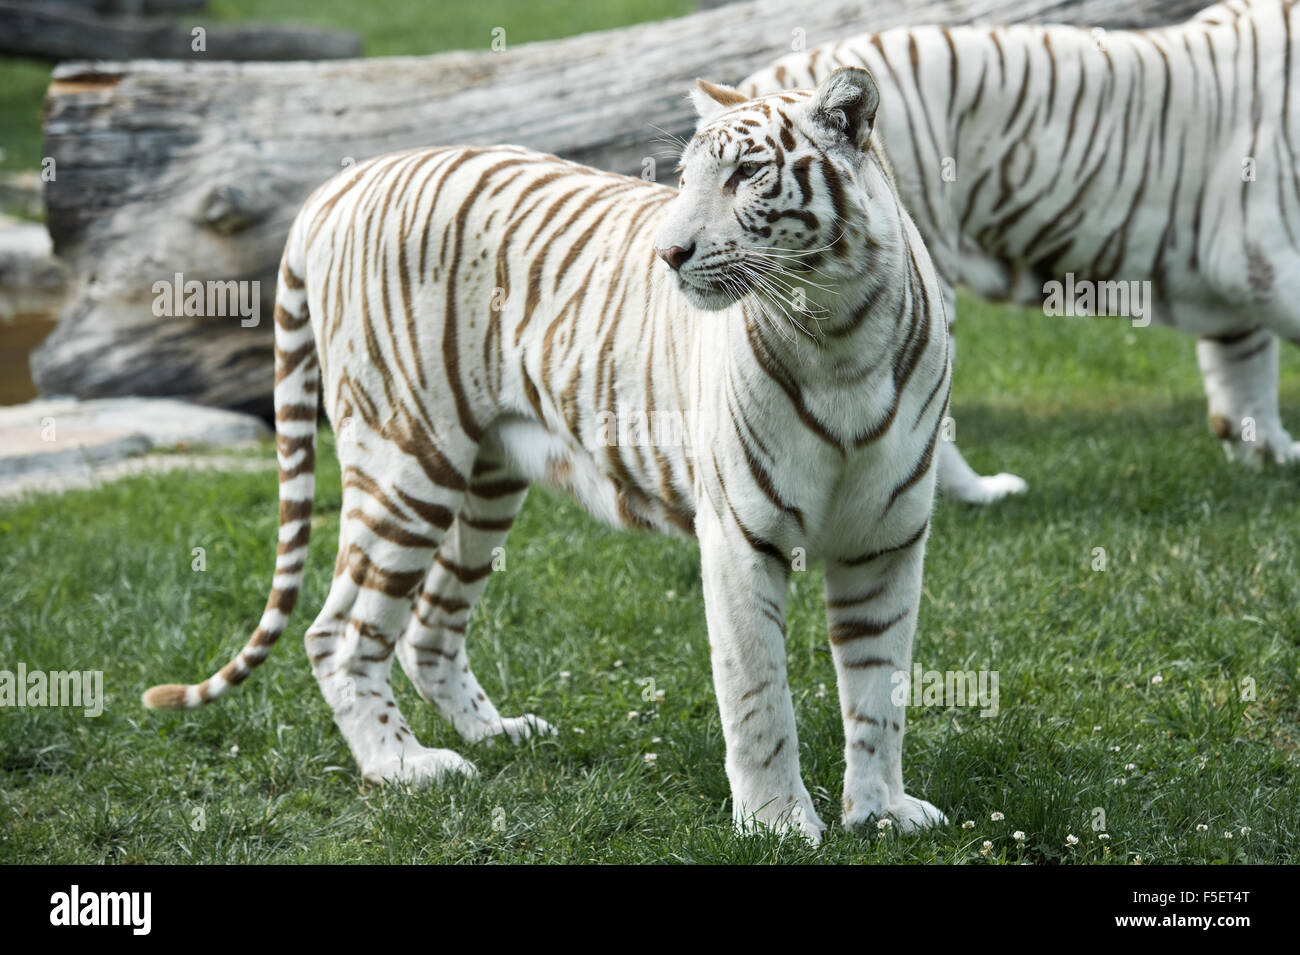 Female of white Bengal tiger - Stock Image